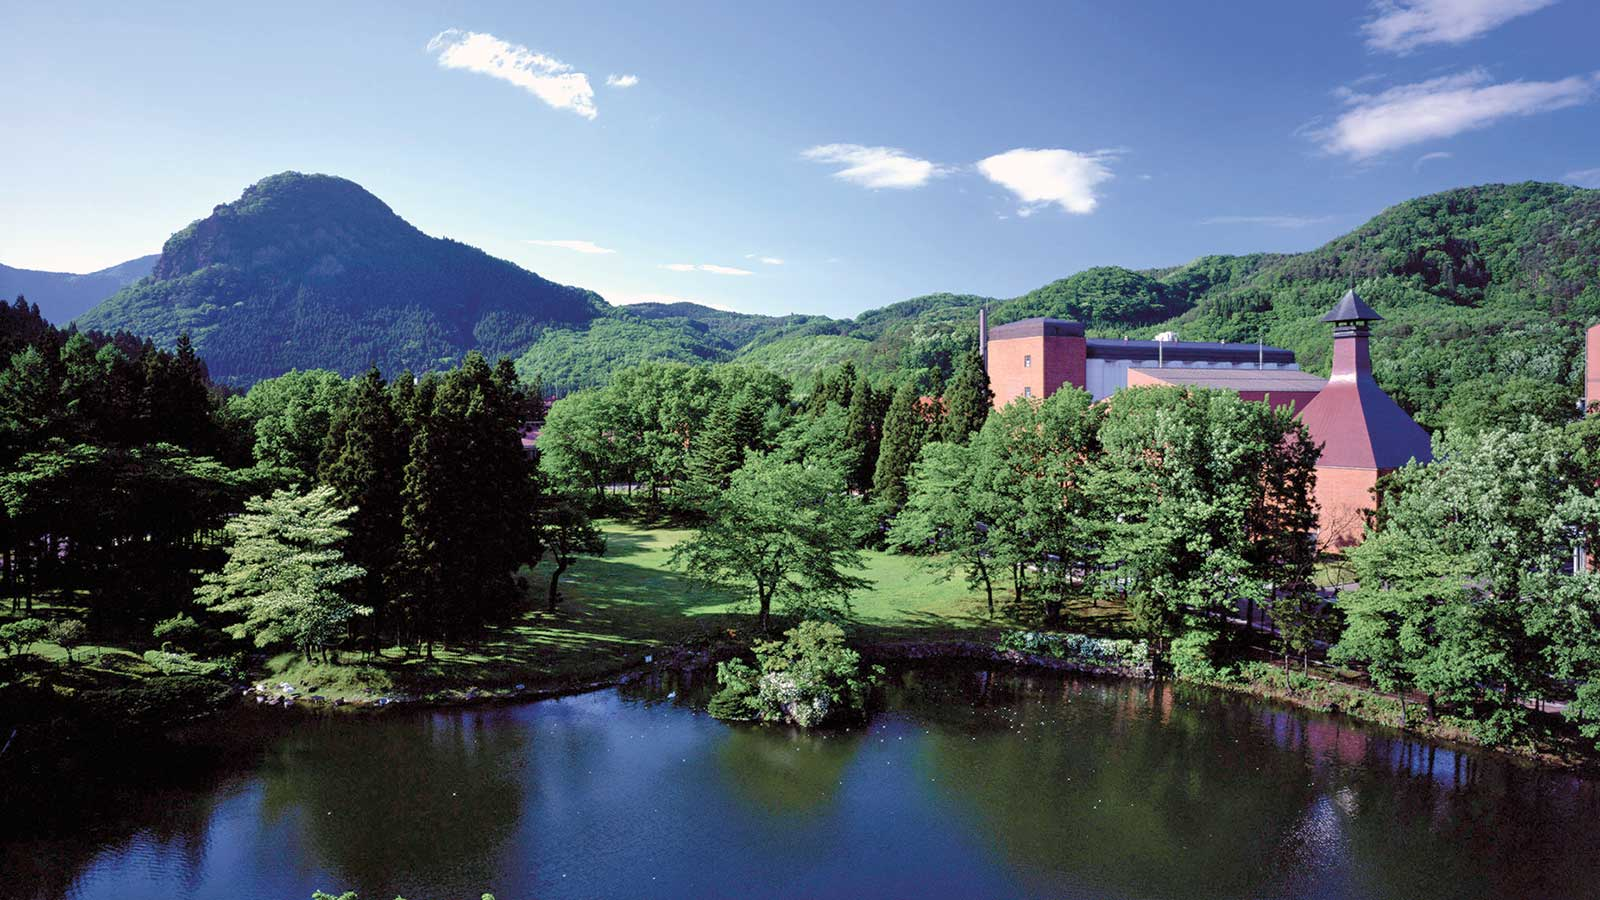 As in Scotland, the Japanese placed their distilleries in mountainous venues (Miyagikyo, this photo) as well as near the coast.